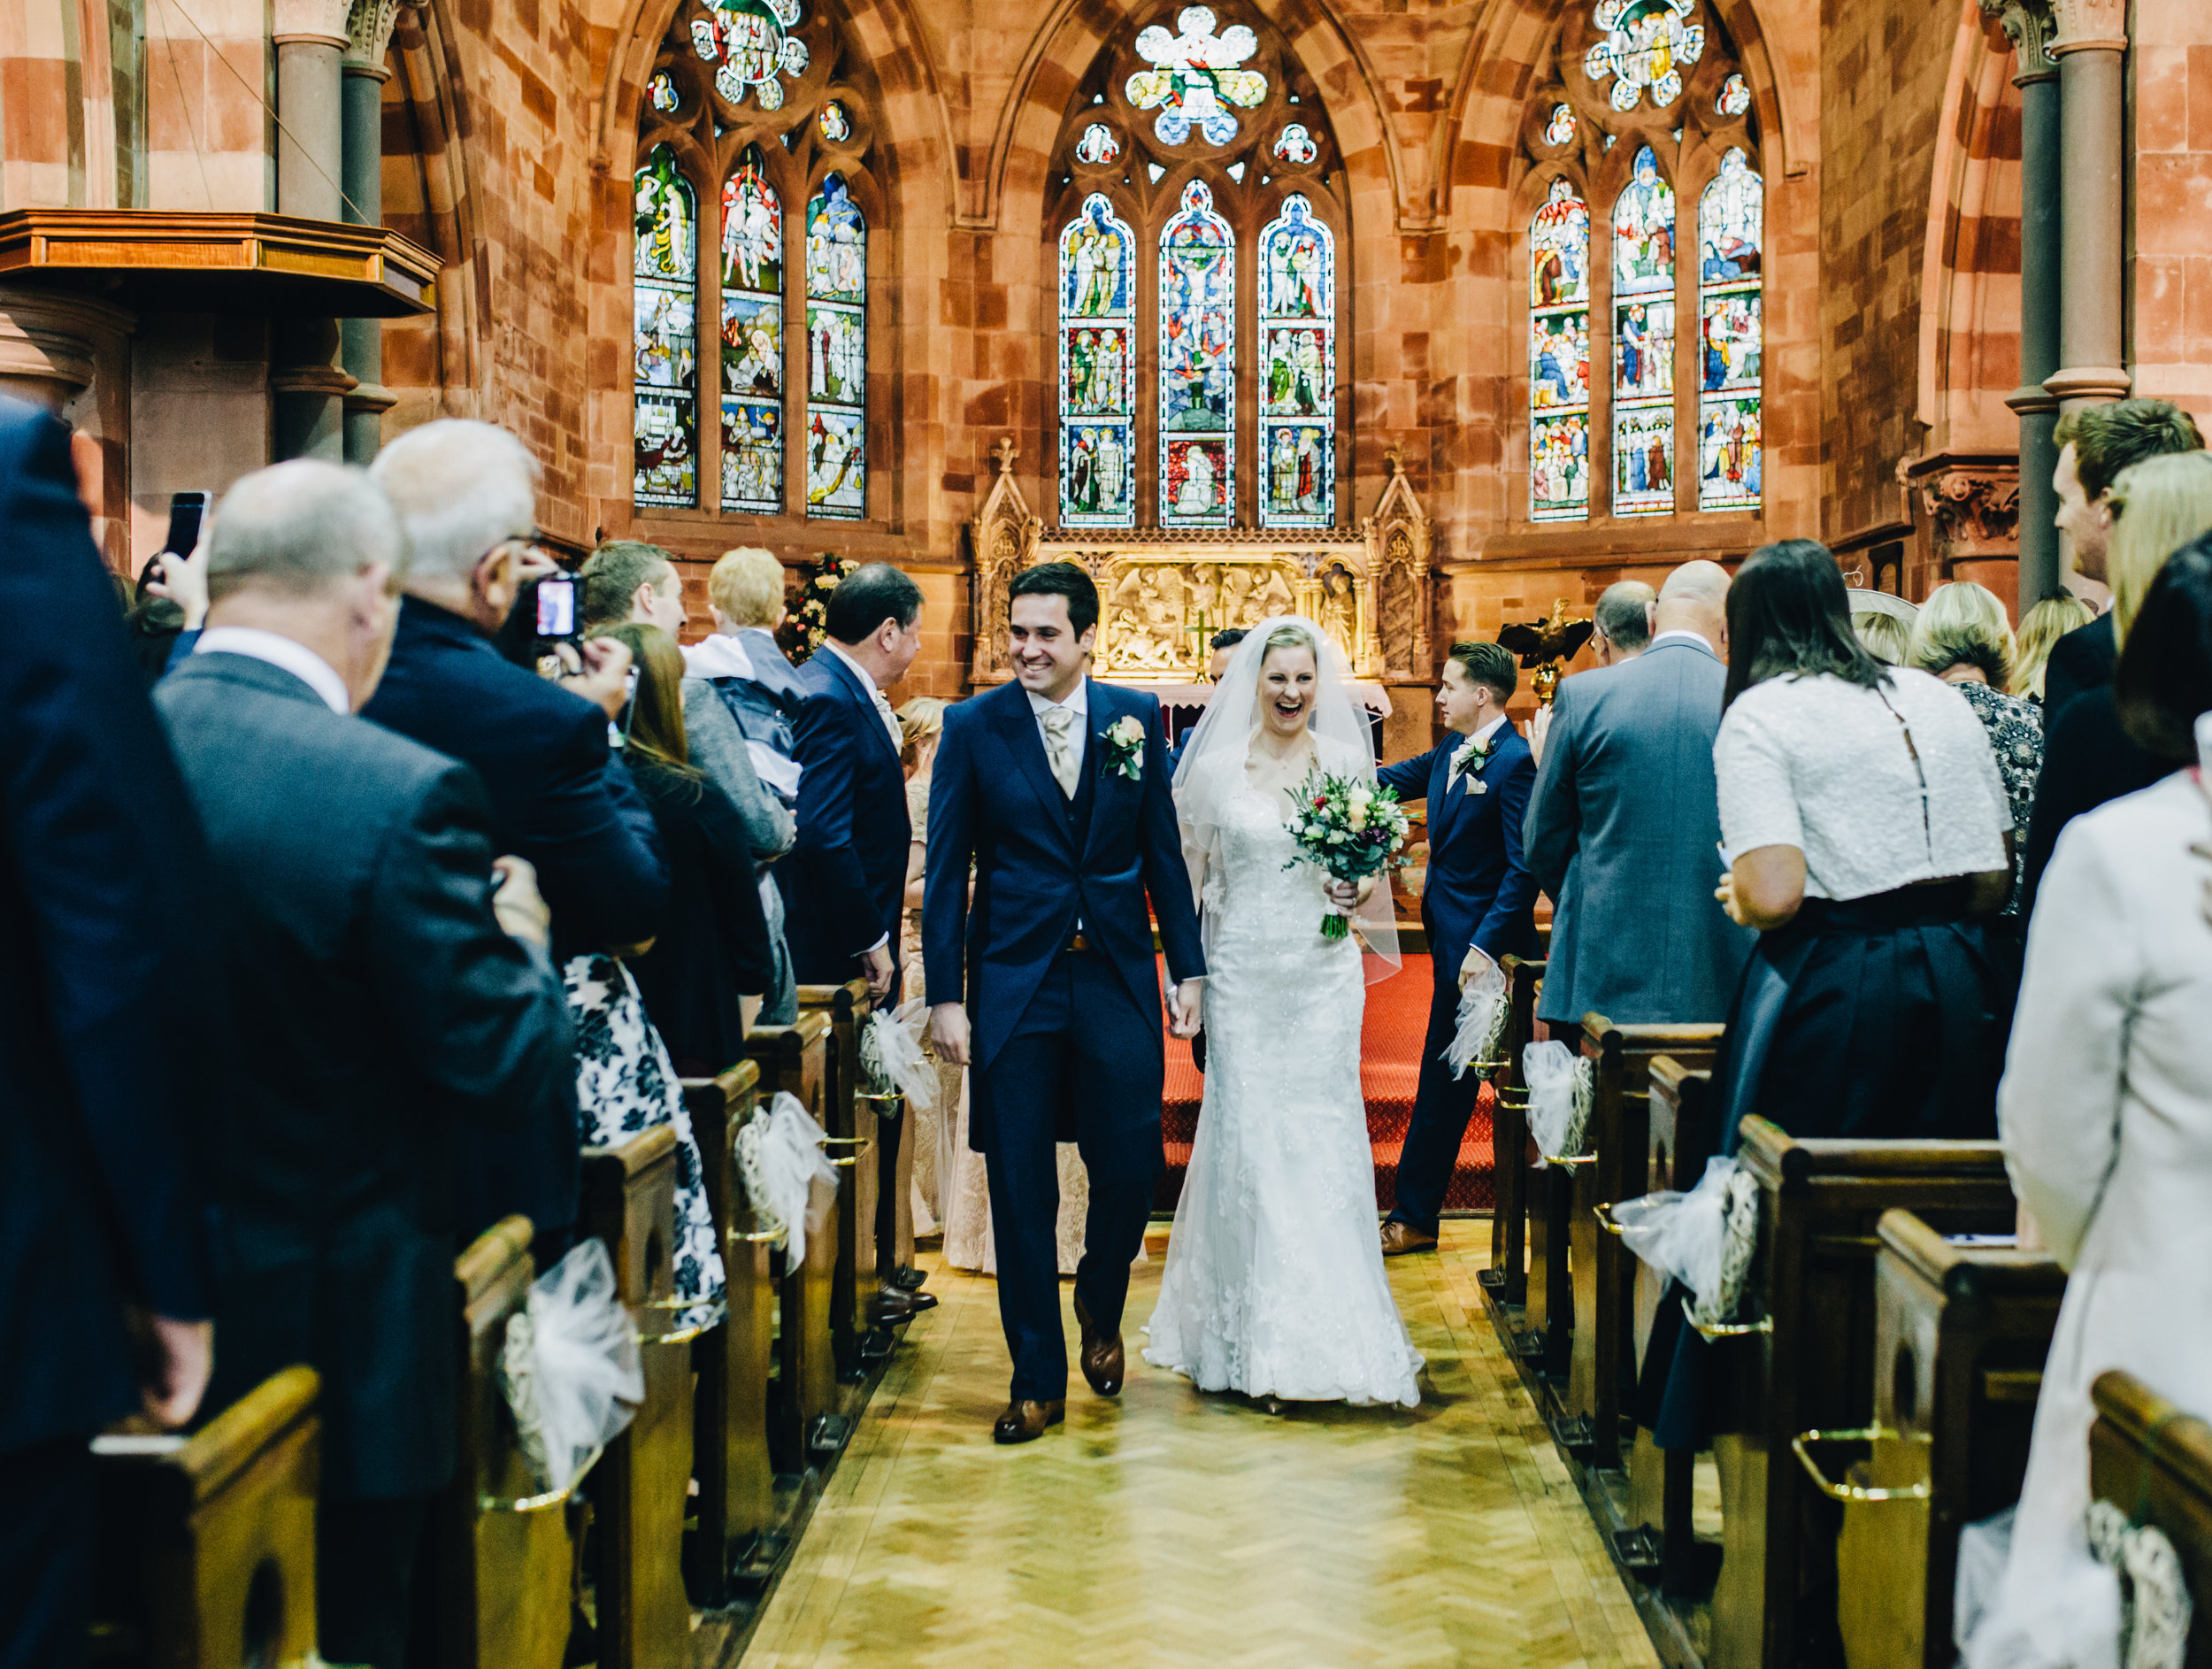 newlyweds walk down the aisle - shropshire wedding